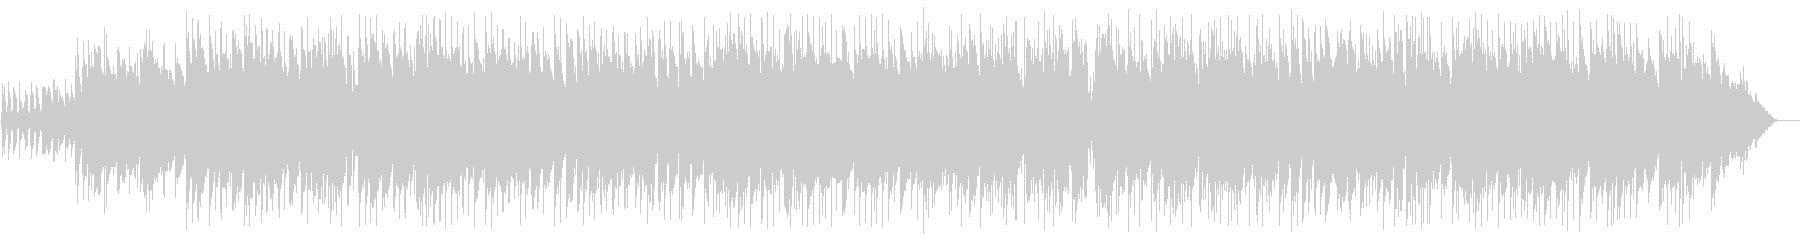 Slow country-style guitar songs's unreproduced waveform